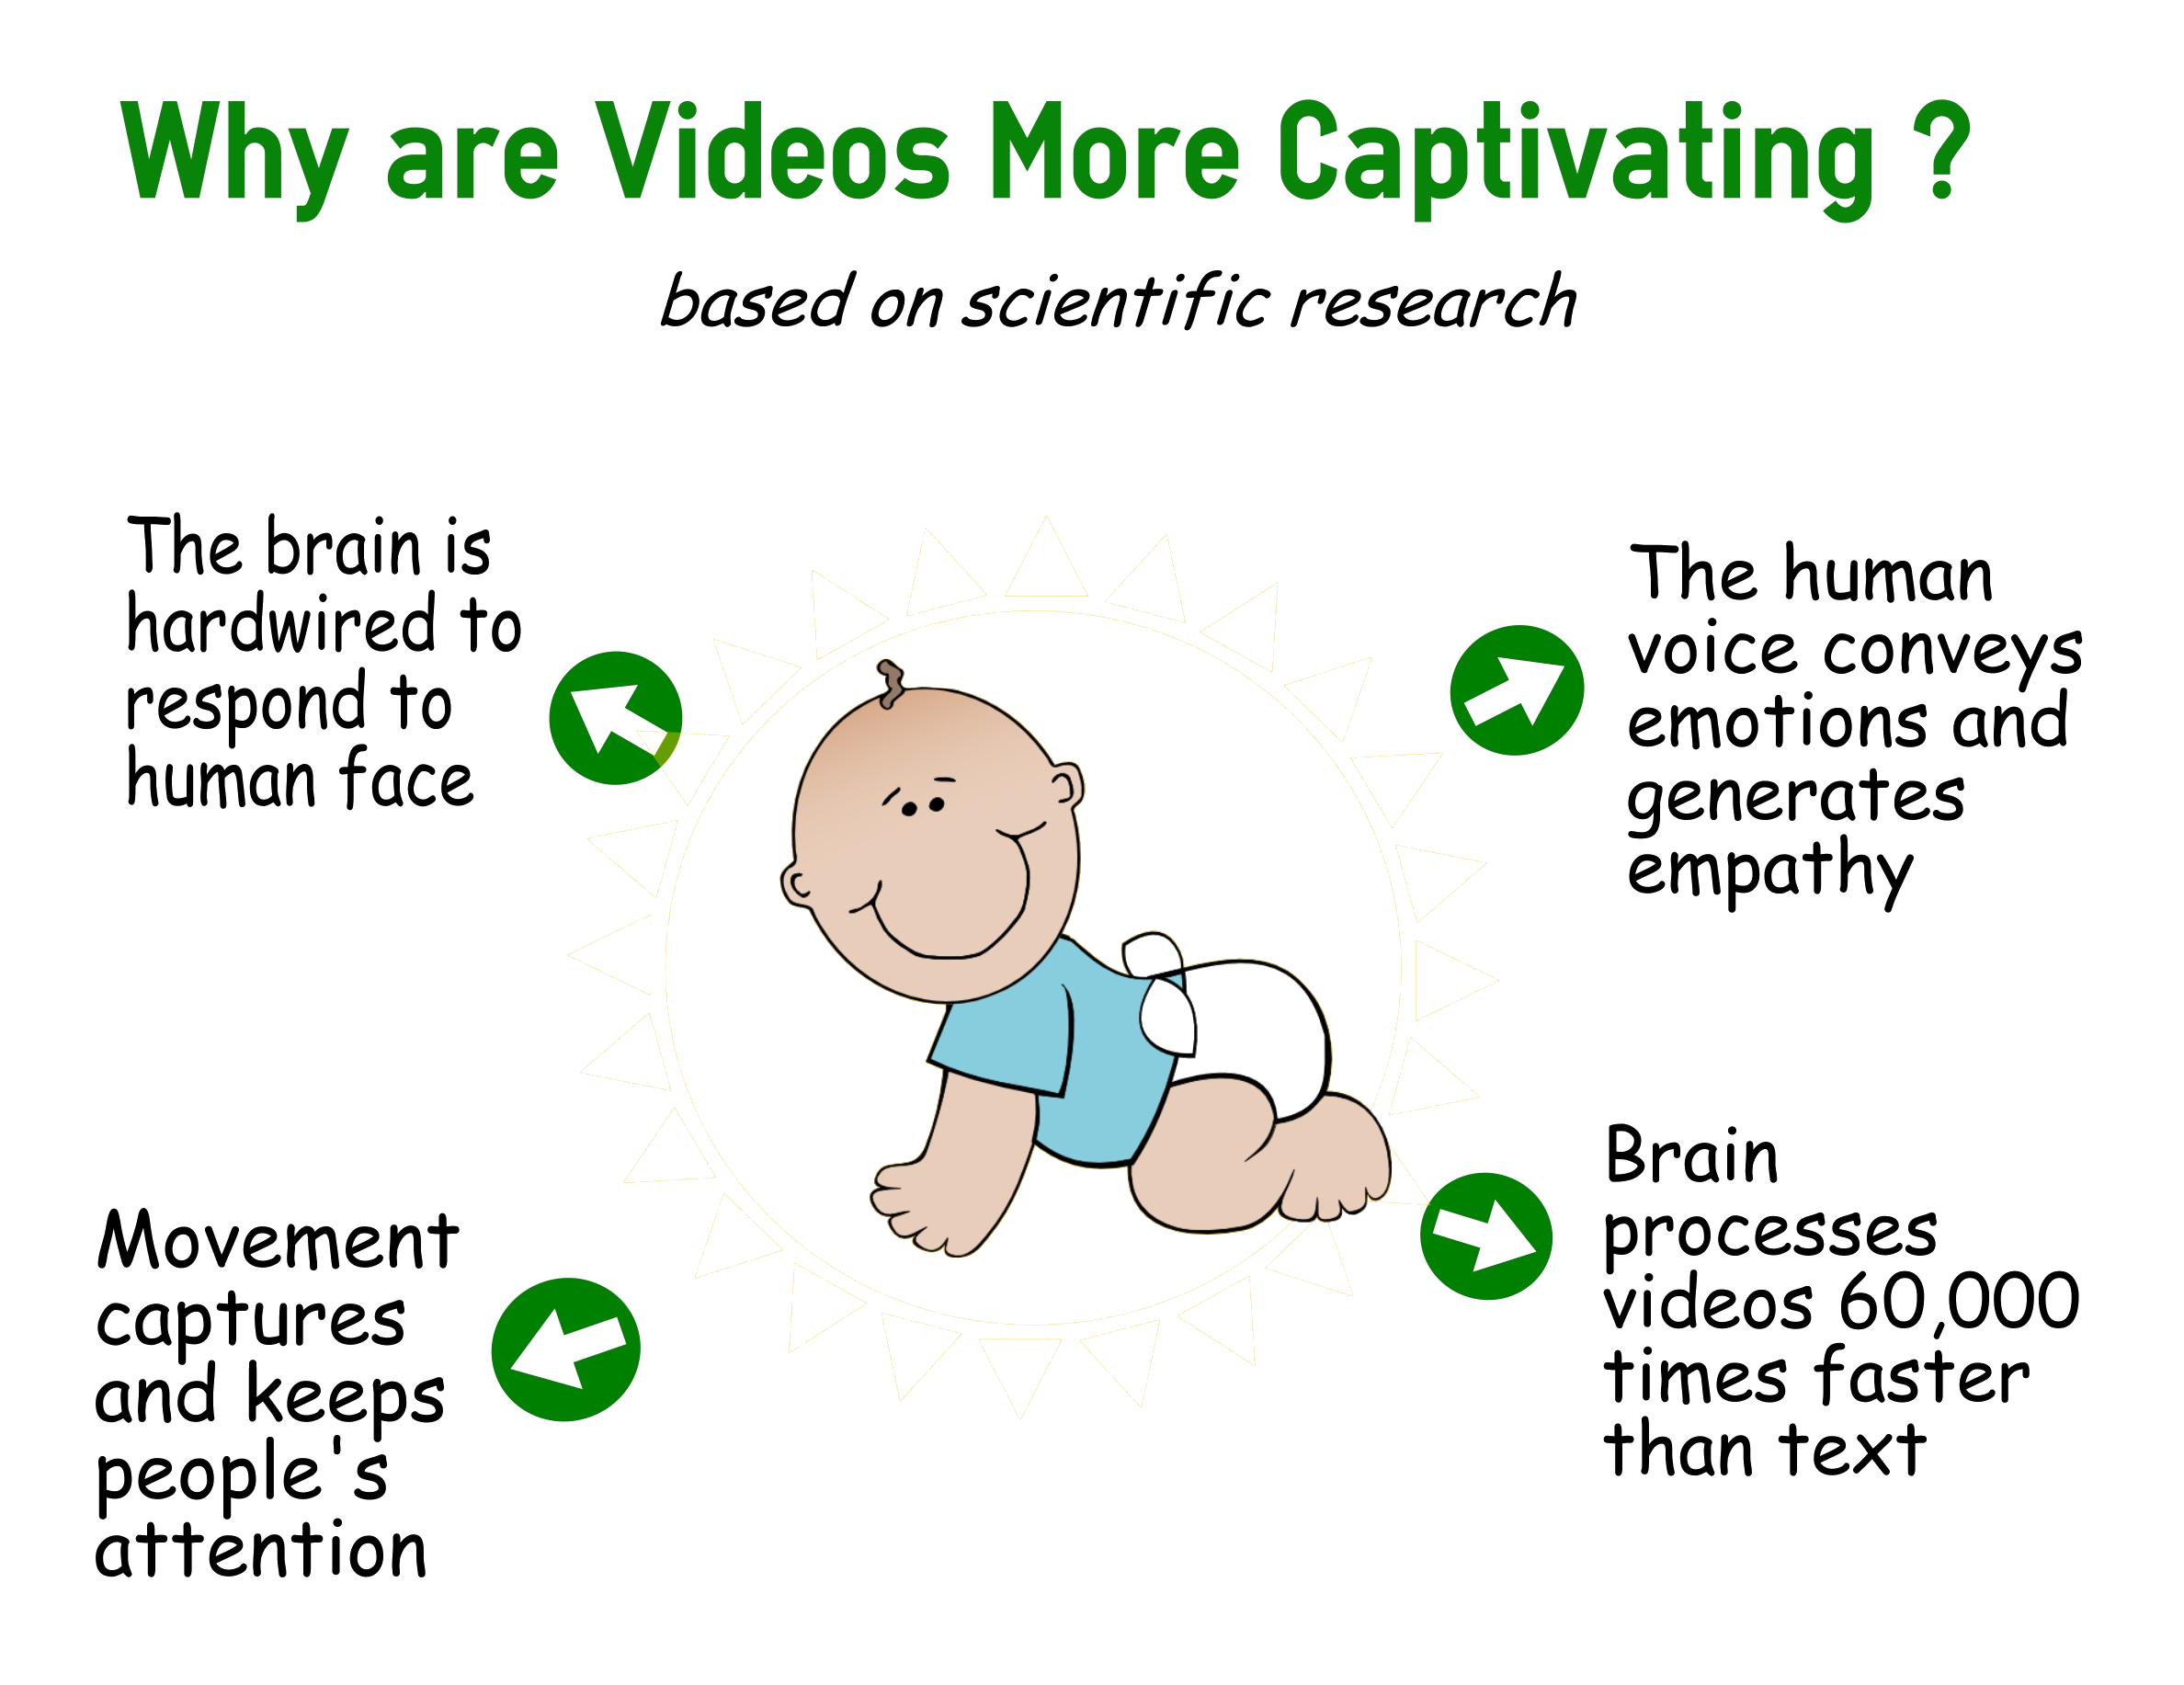 videos are more captivating as the brain is hardwired to respond to face and brain processes videos 600000 times faster that text